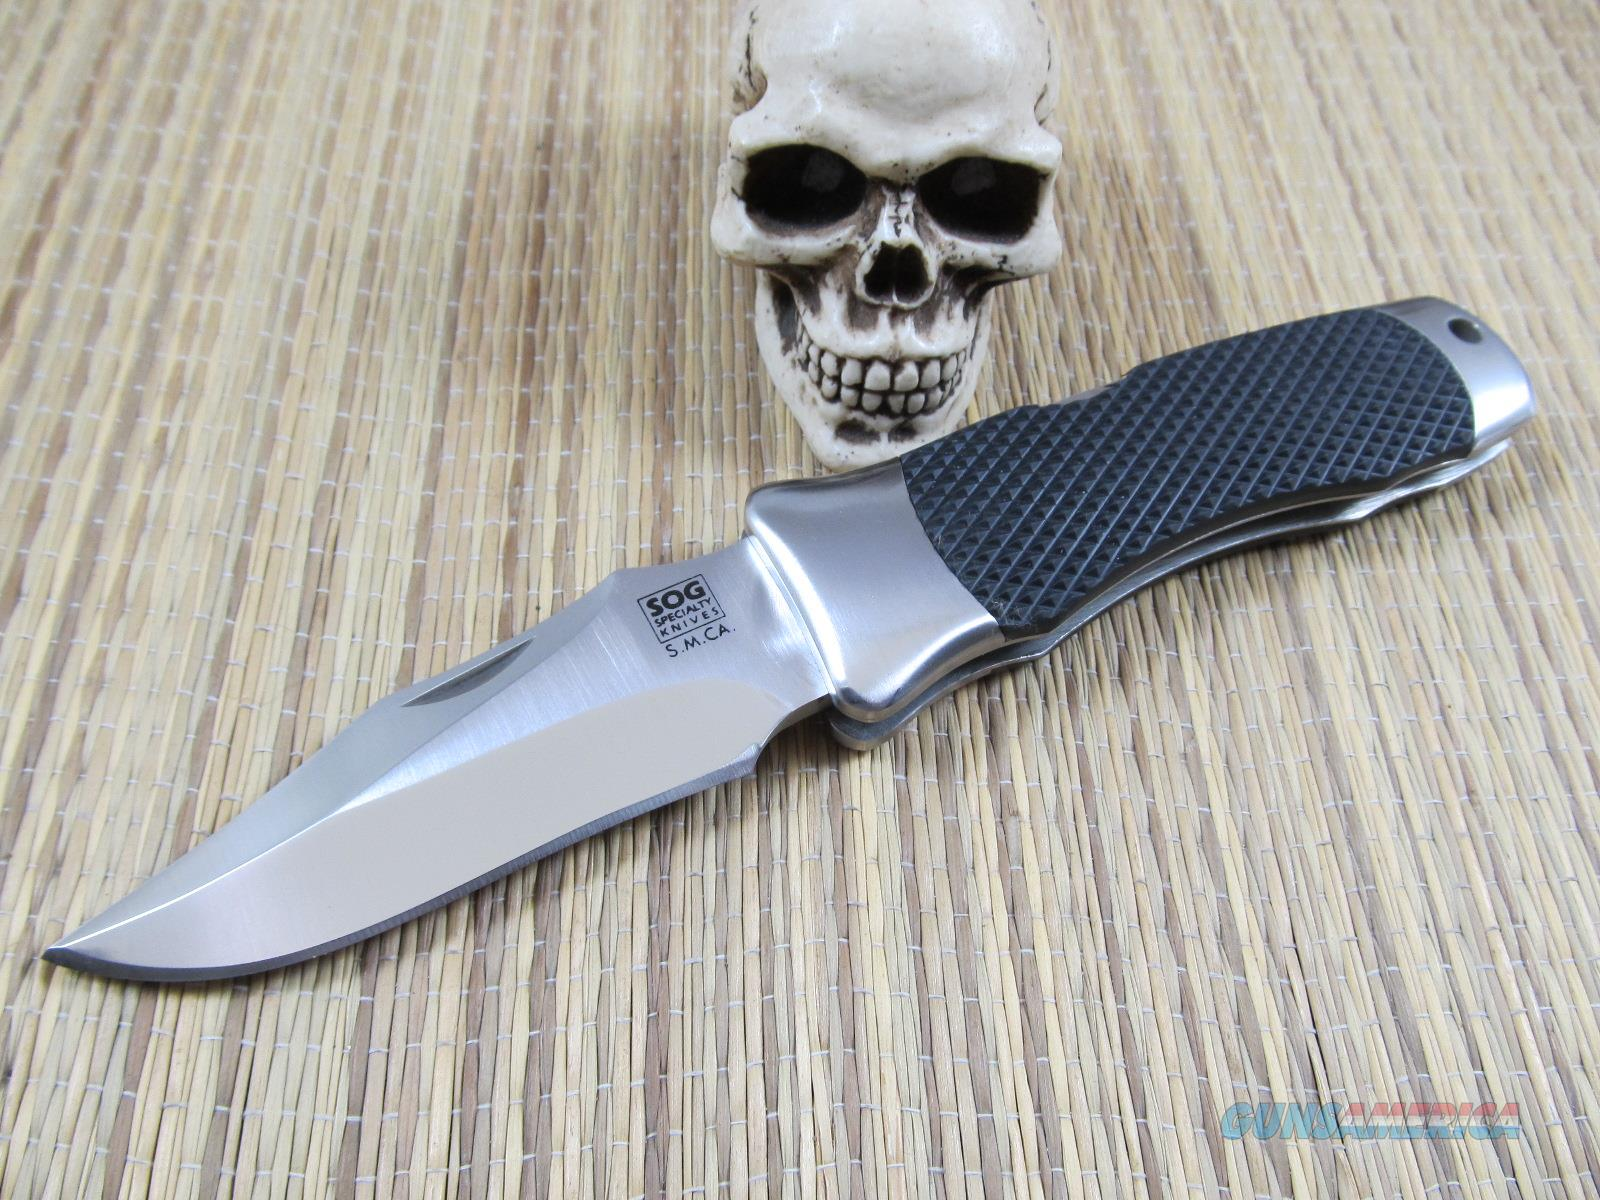 SOG Knives Tomacat  Non-Guns > Knives/Swords > Knives > Folding Blade > Imported